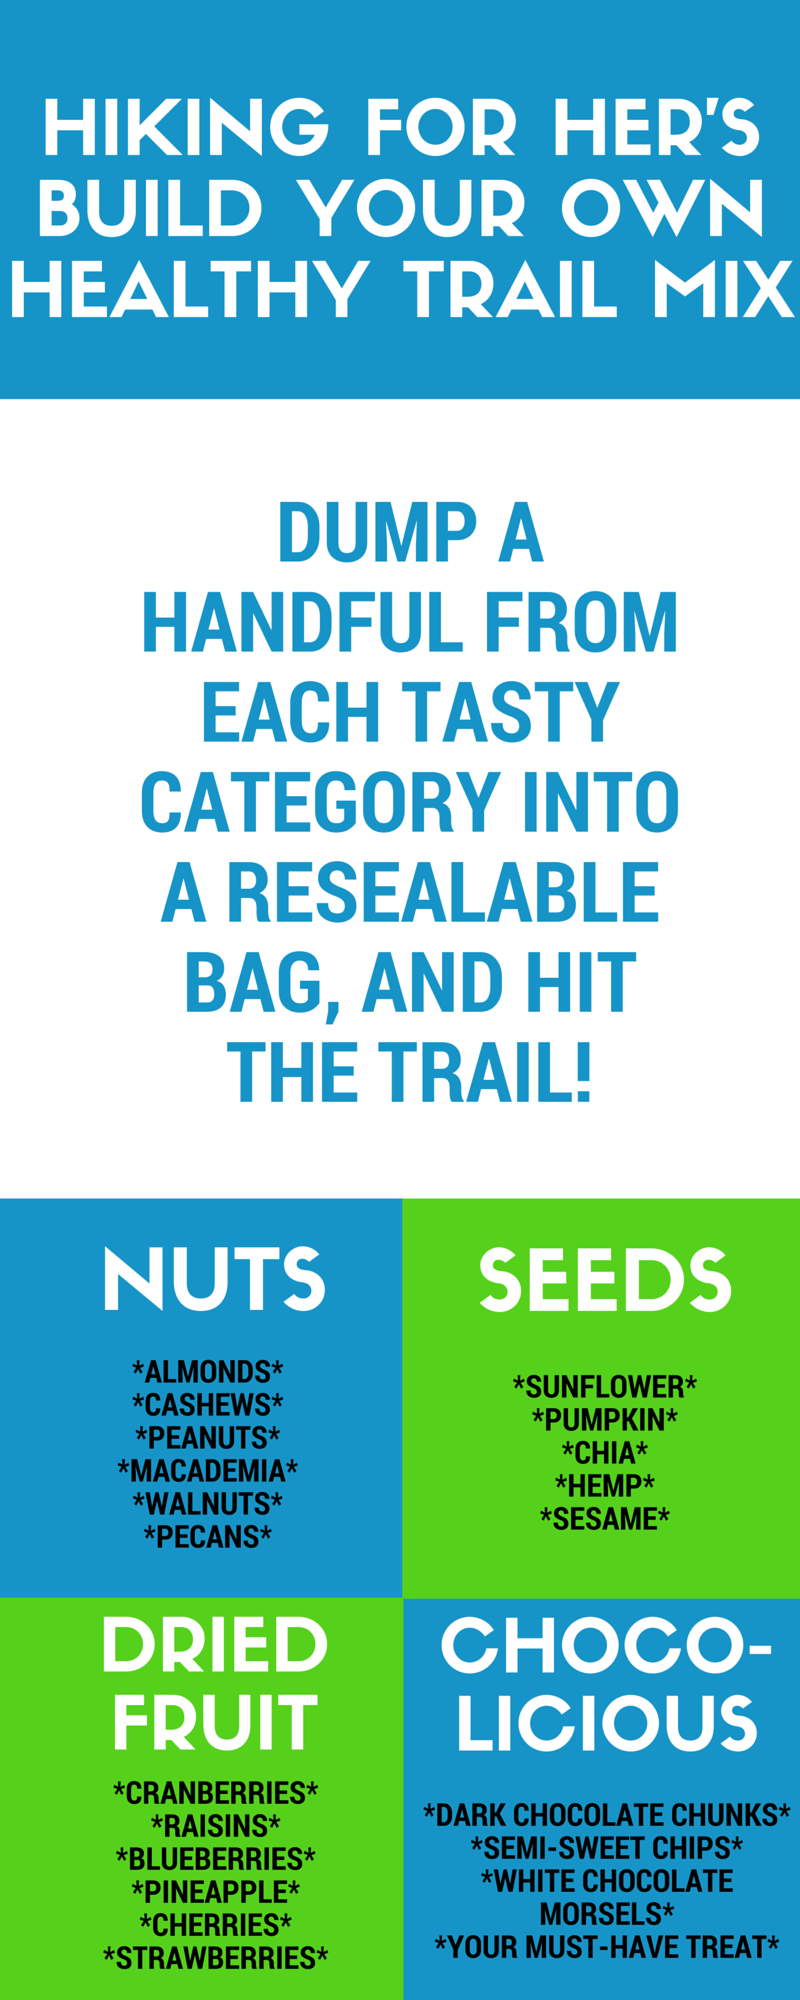 Trail snacks don't have to be boring. Mix up your own personal blend of delicious hiking food!